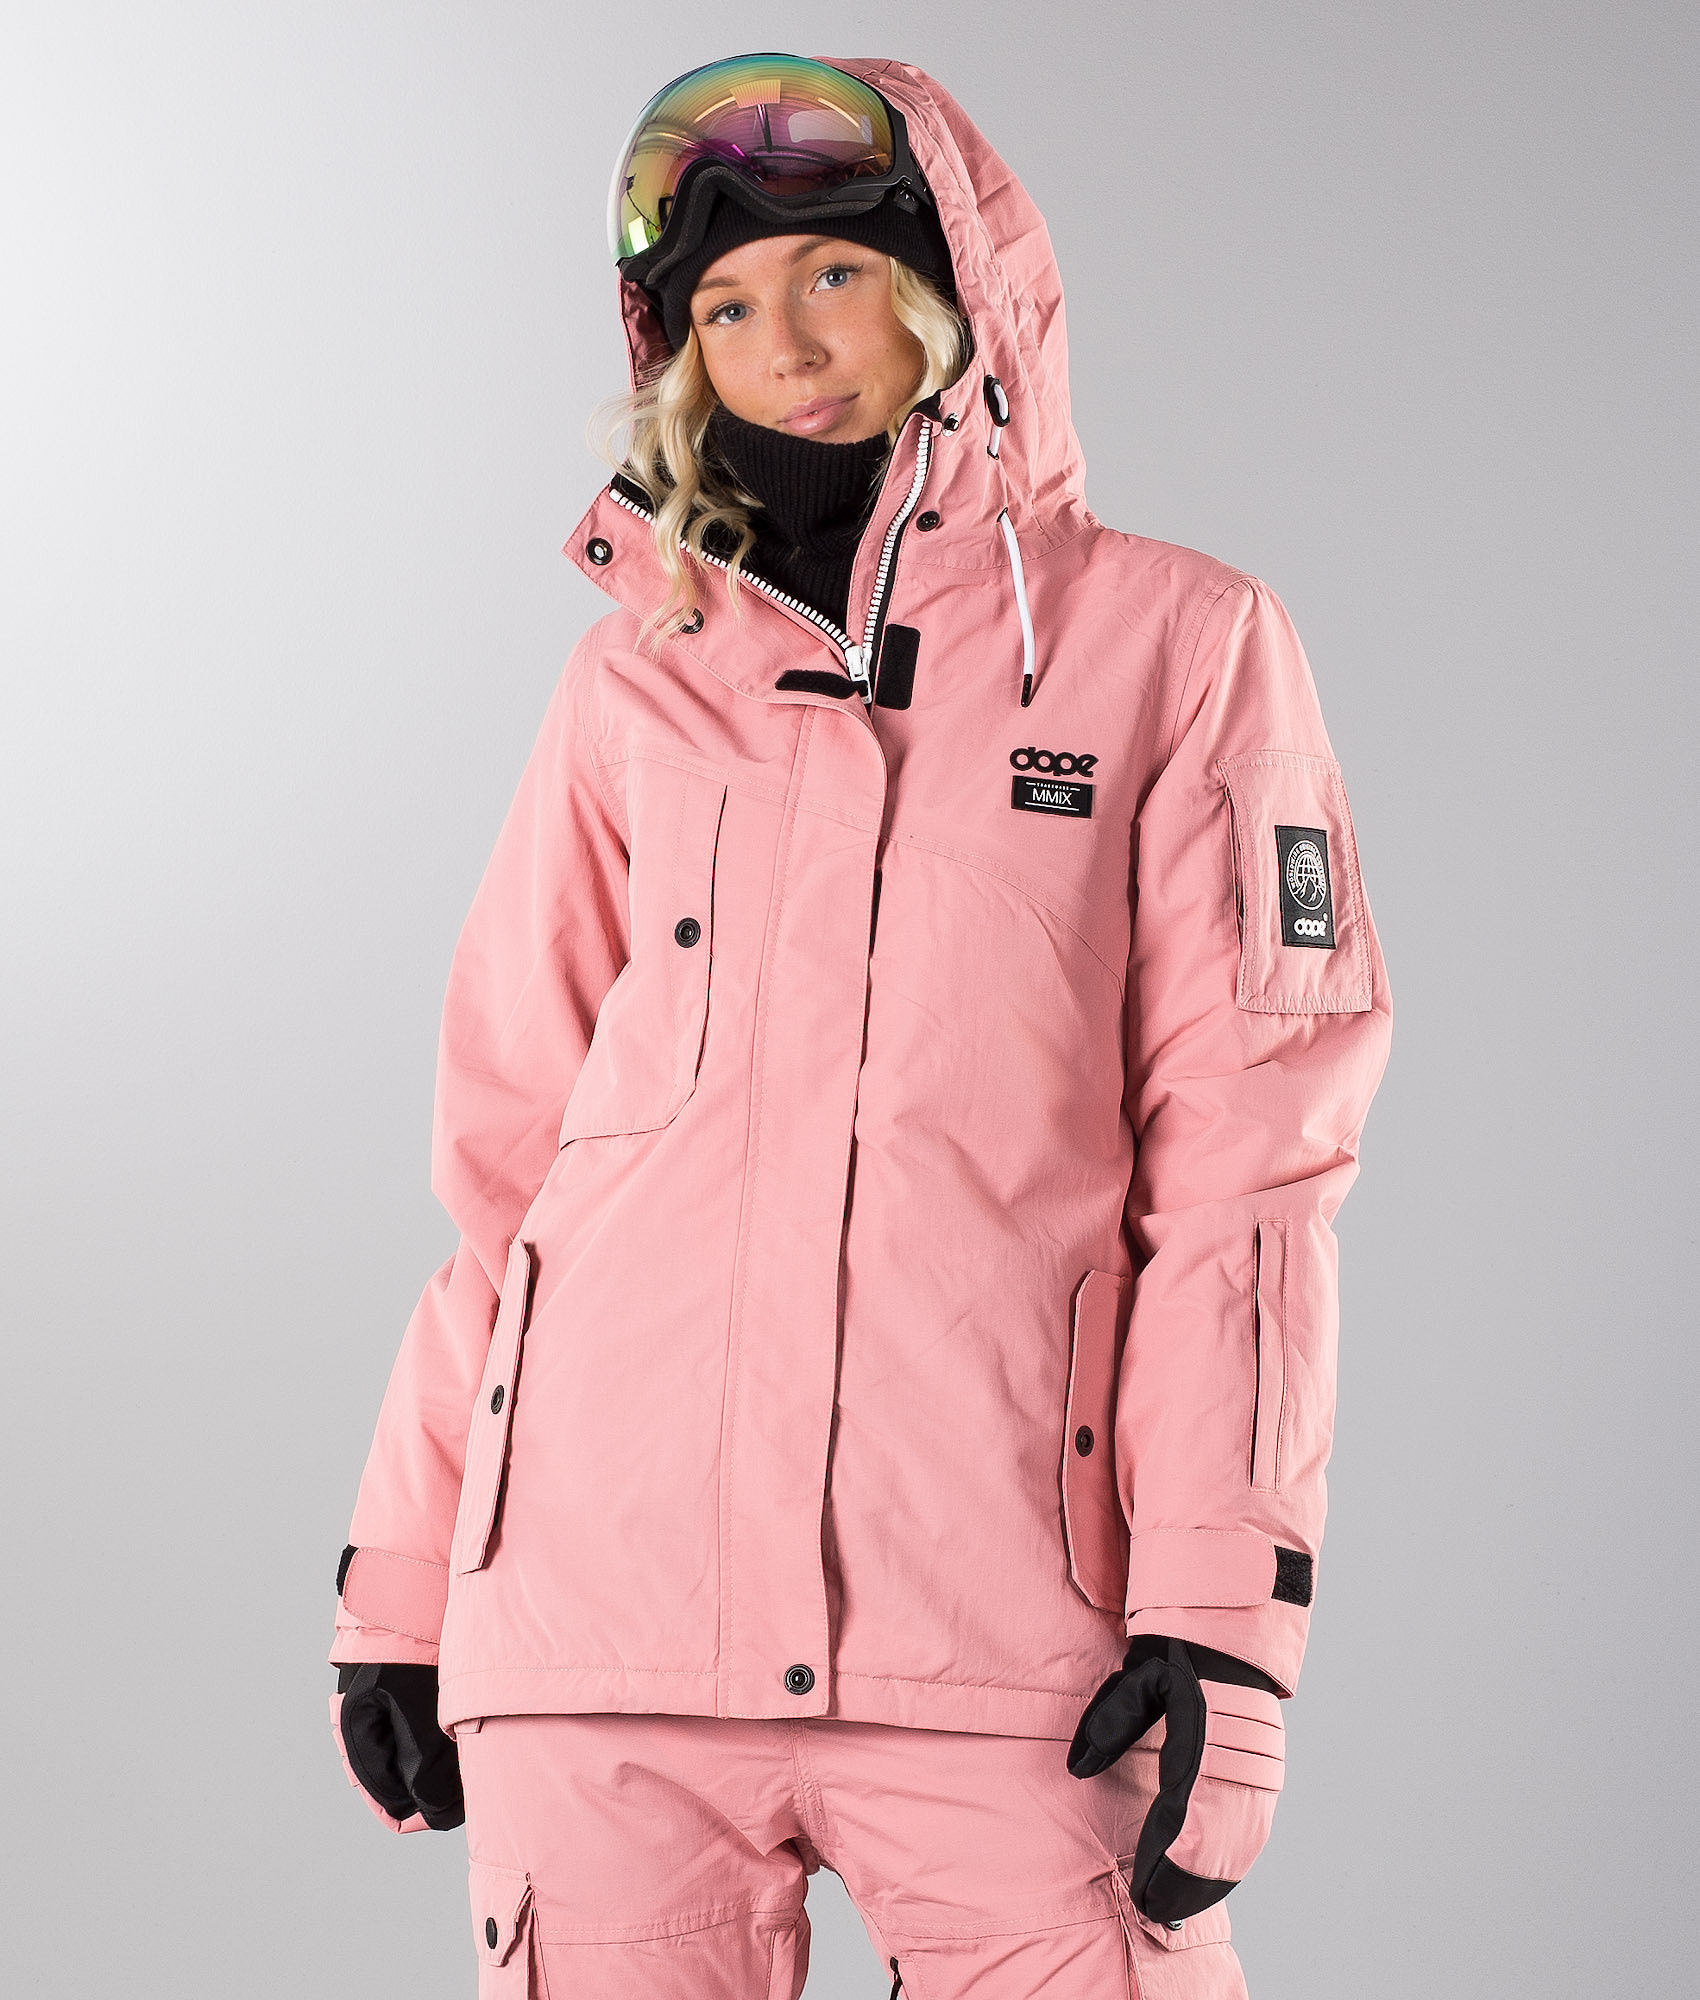 bd70a4d5 Women's Snowboard Jackets | Fast & Free Delivery | RIDESTORE